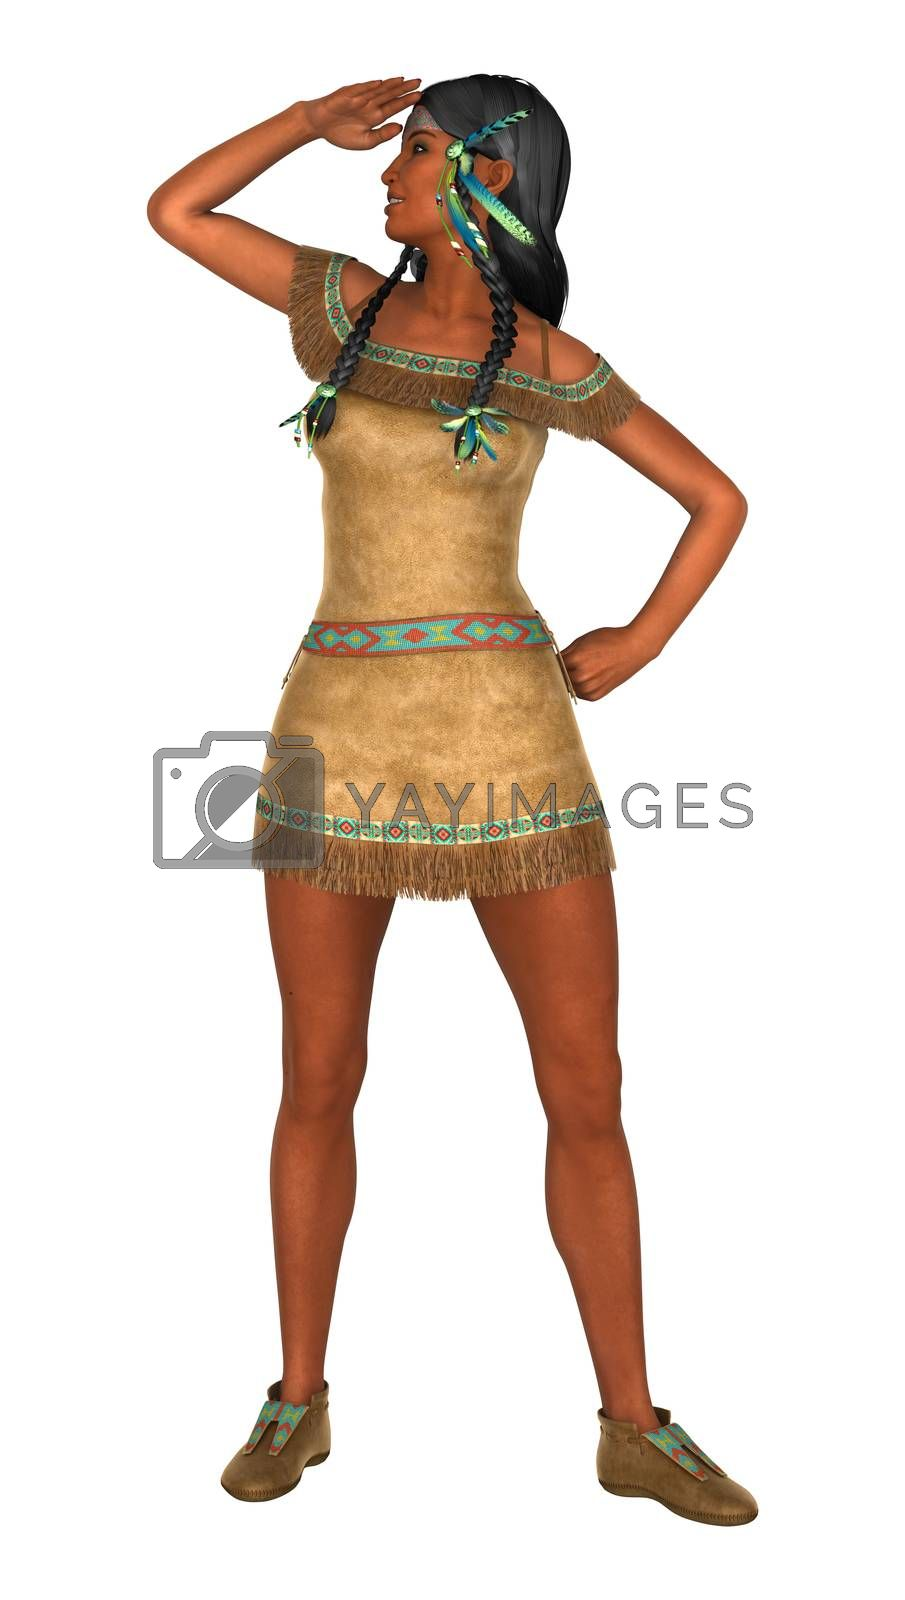 3D digital render of a native American woman isolated on white background